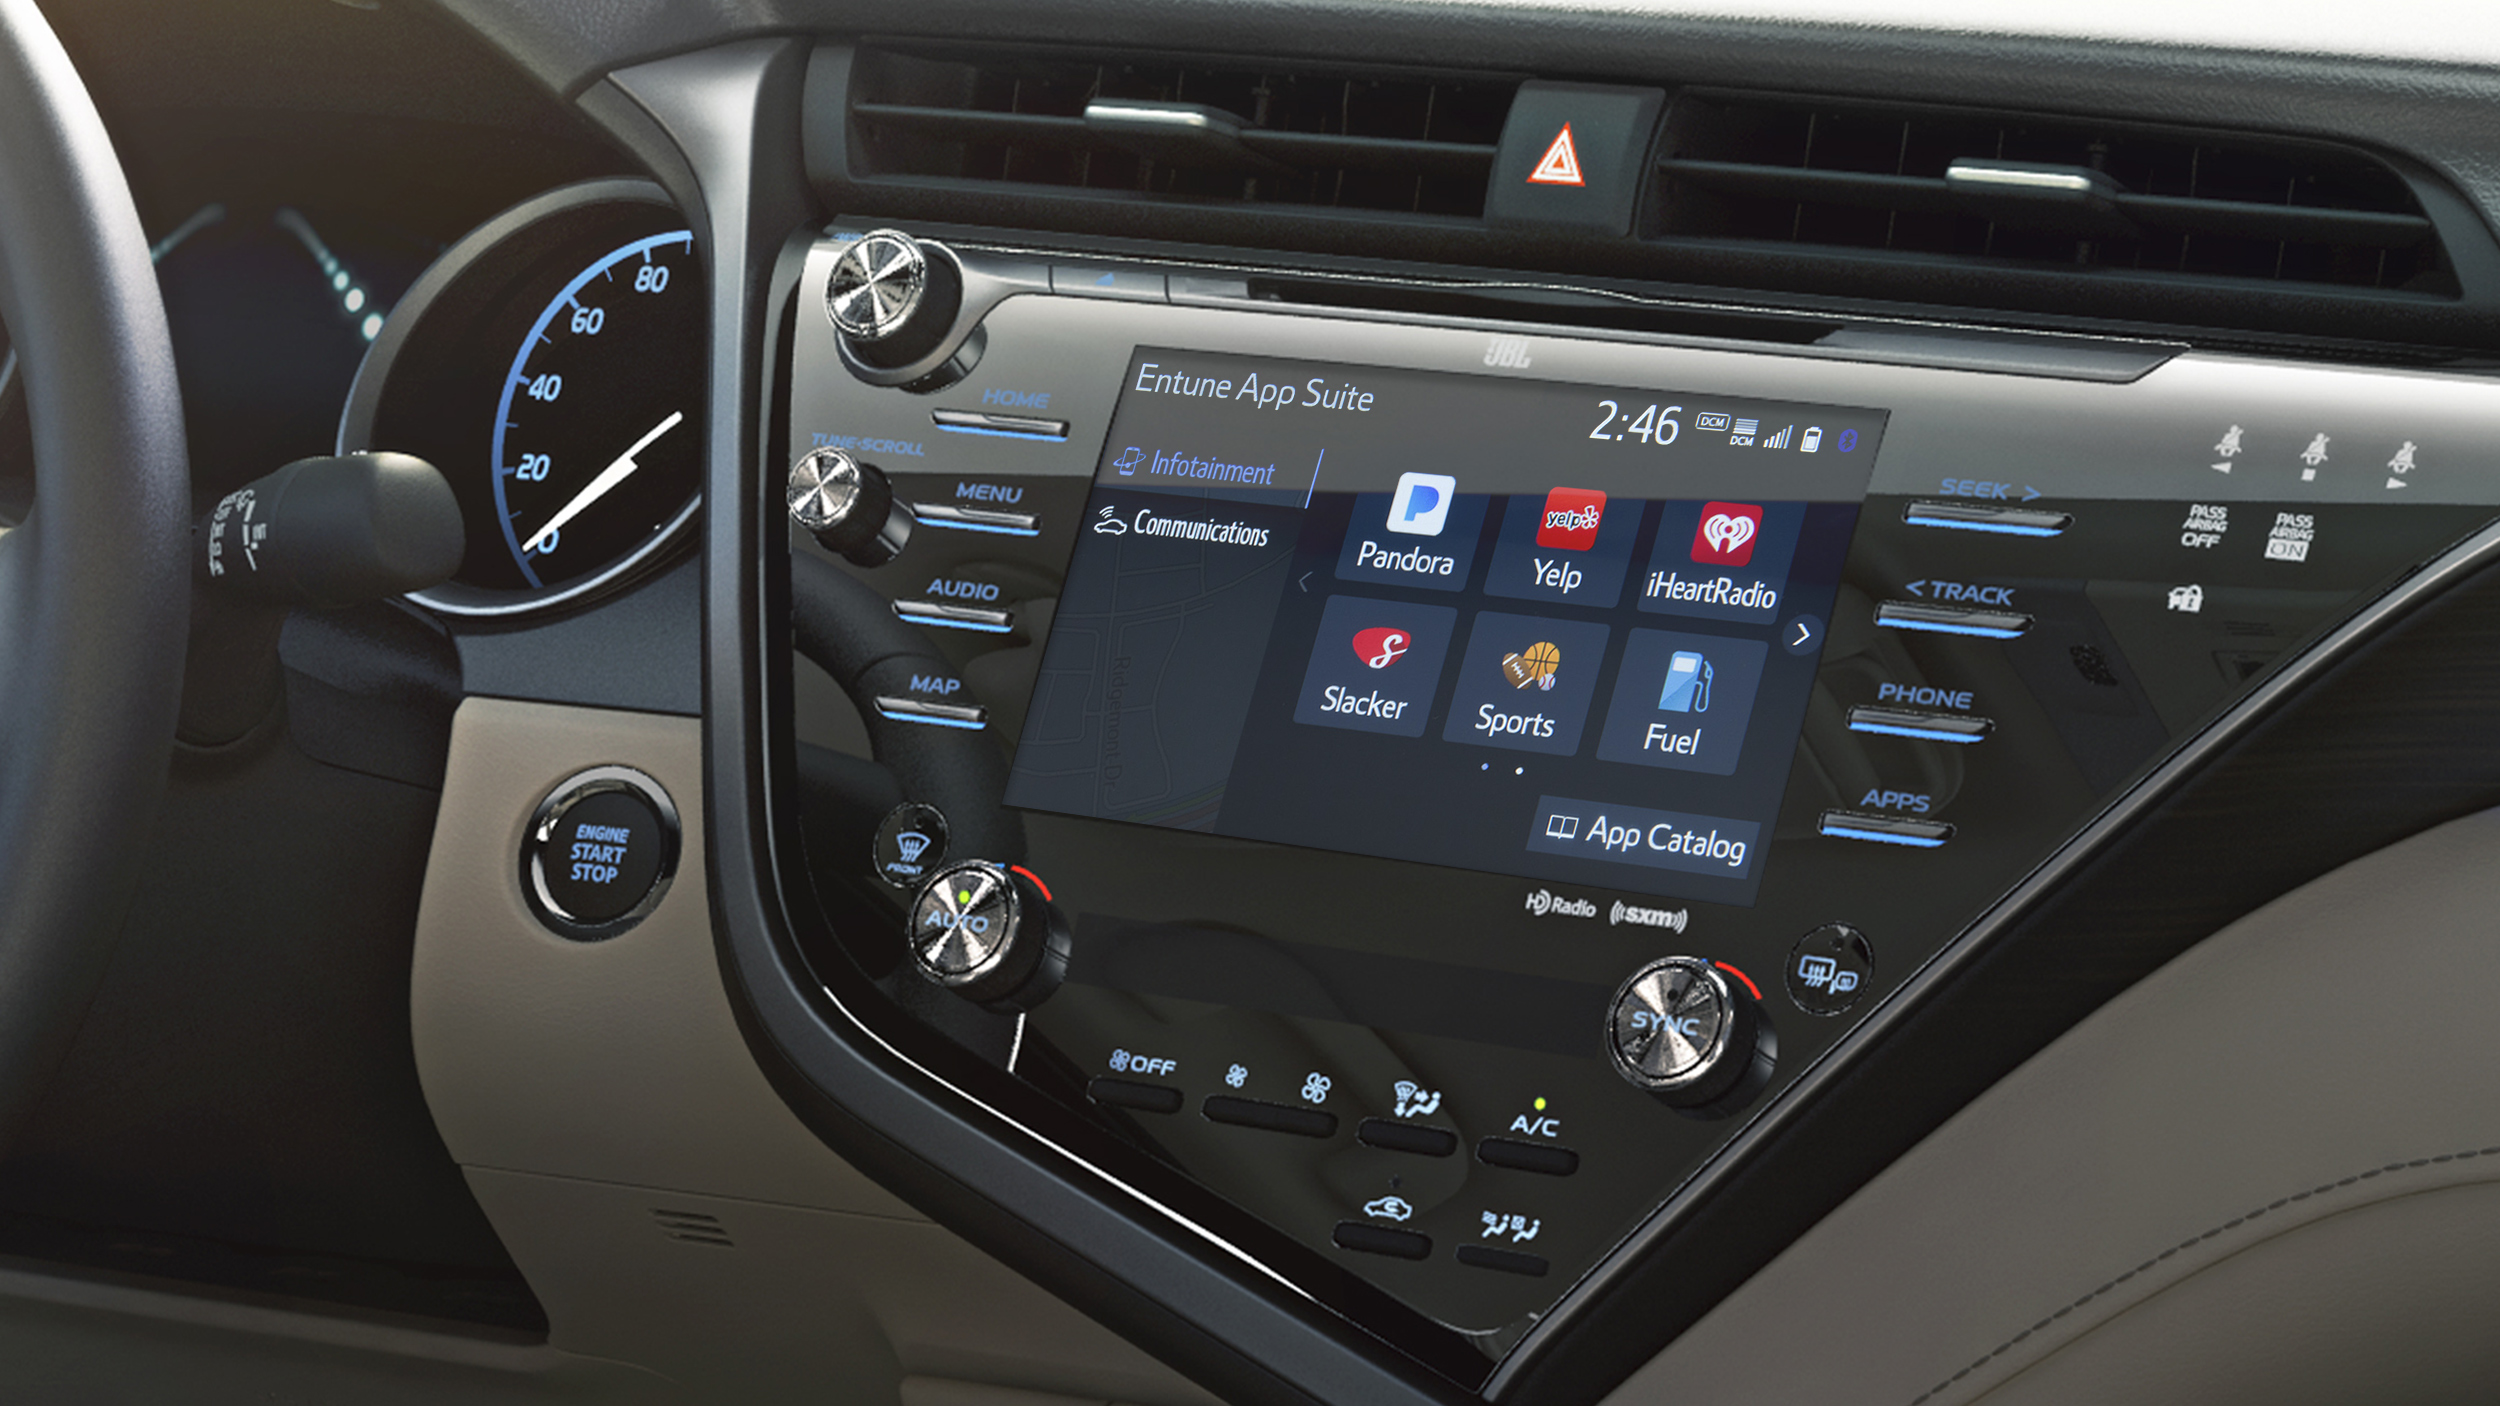 How To Update Toyota Entune >> When Will Toyota Update Entune To Entune 3 0